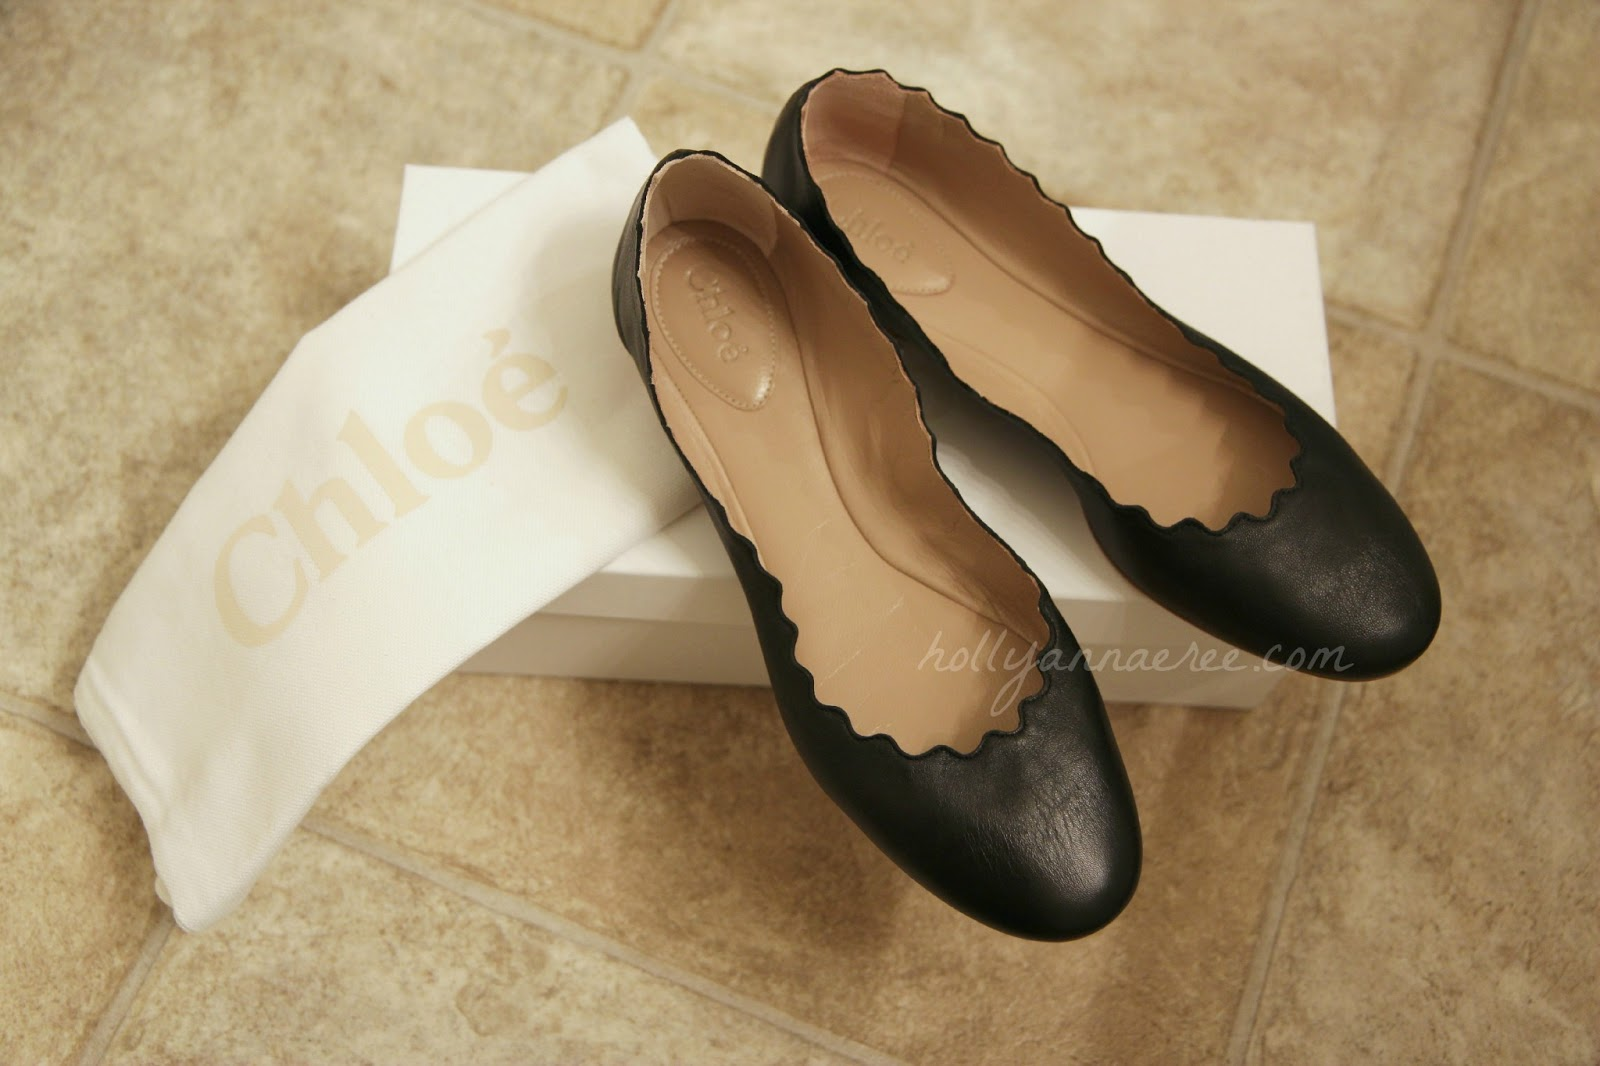 Chloe Lambskin Flats [Review] Most Comfortable Flats I've EVER Had!